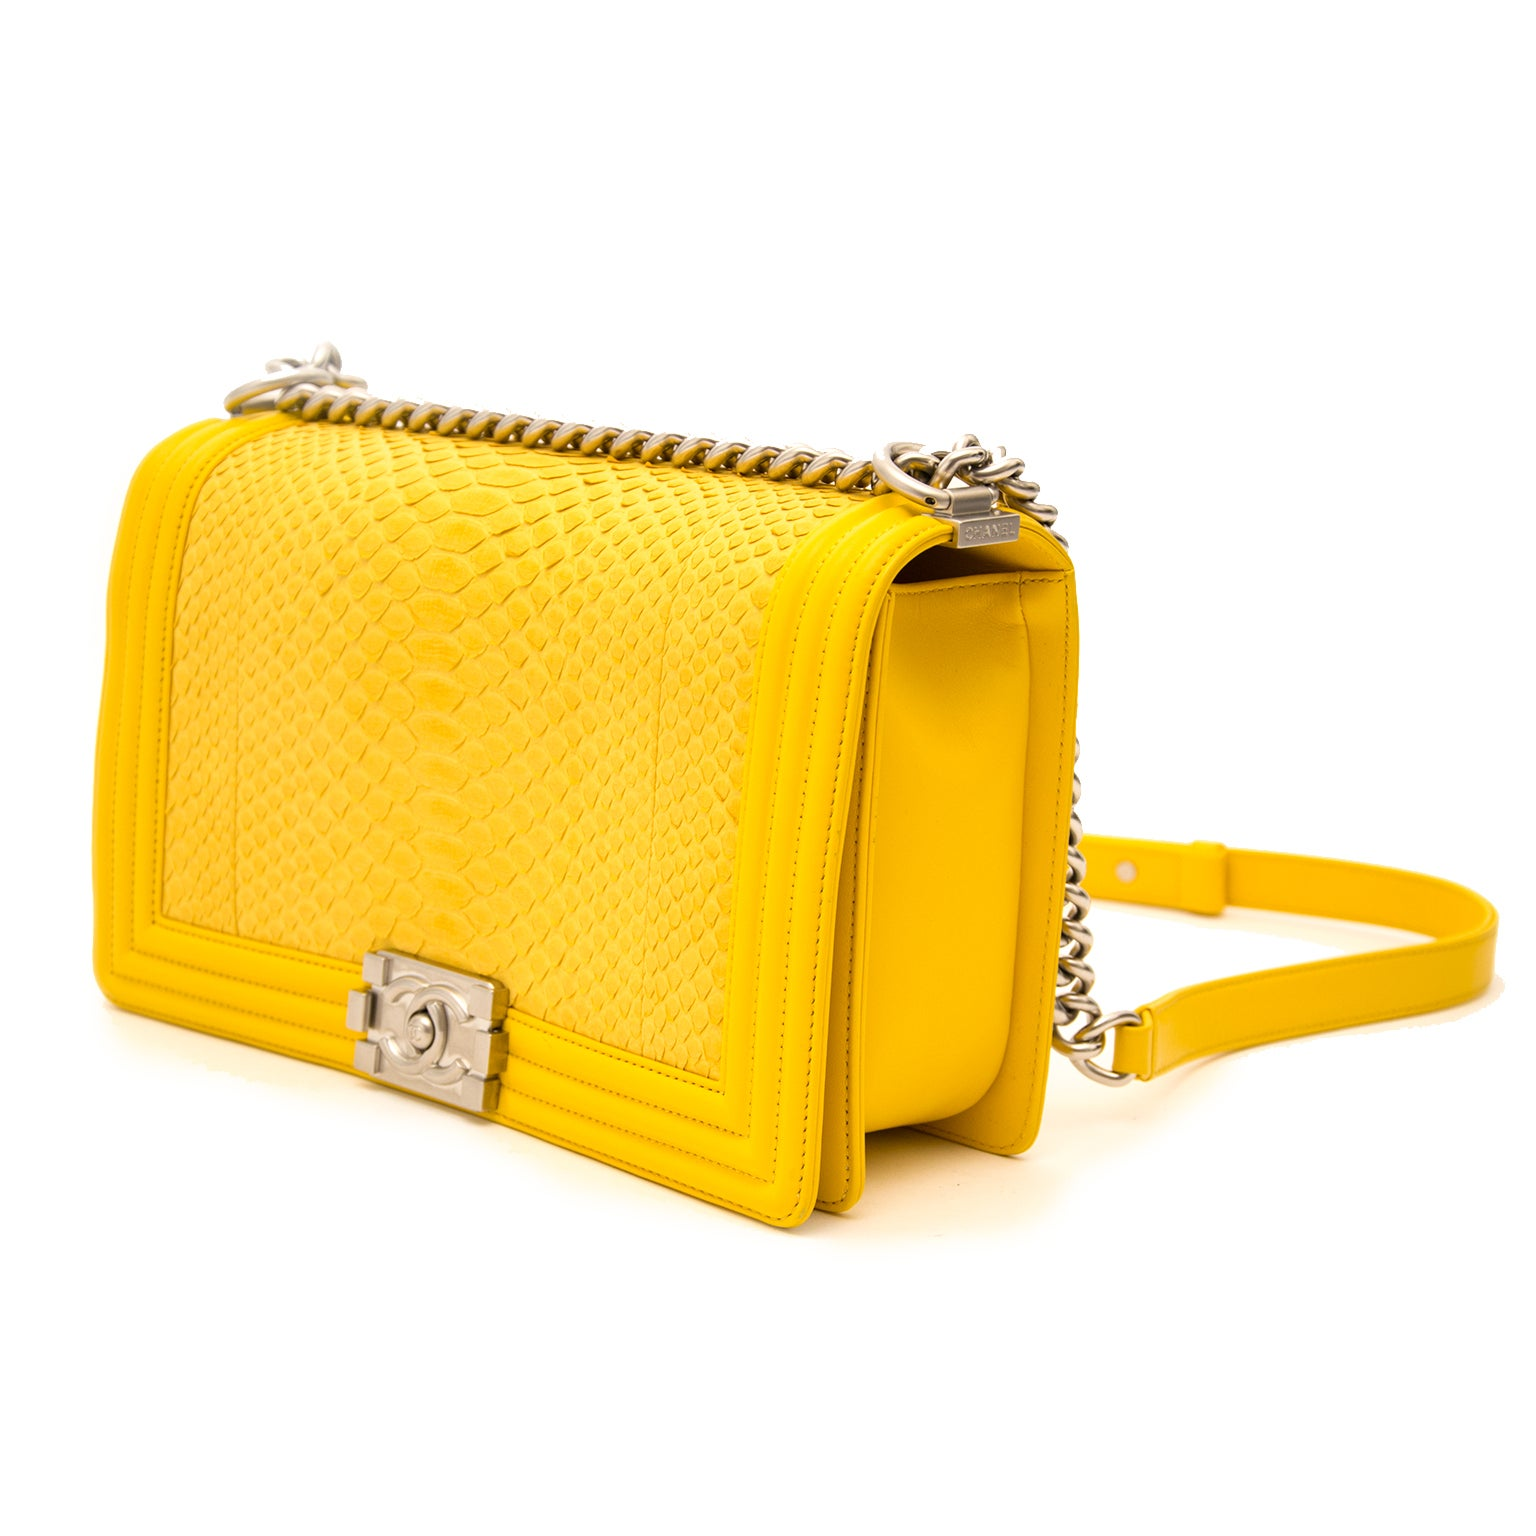 ac4f14489e60 Limited Chanel Python Yellow New Medium Boy Bag at 1stdibs